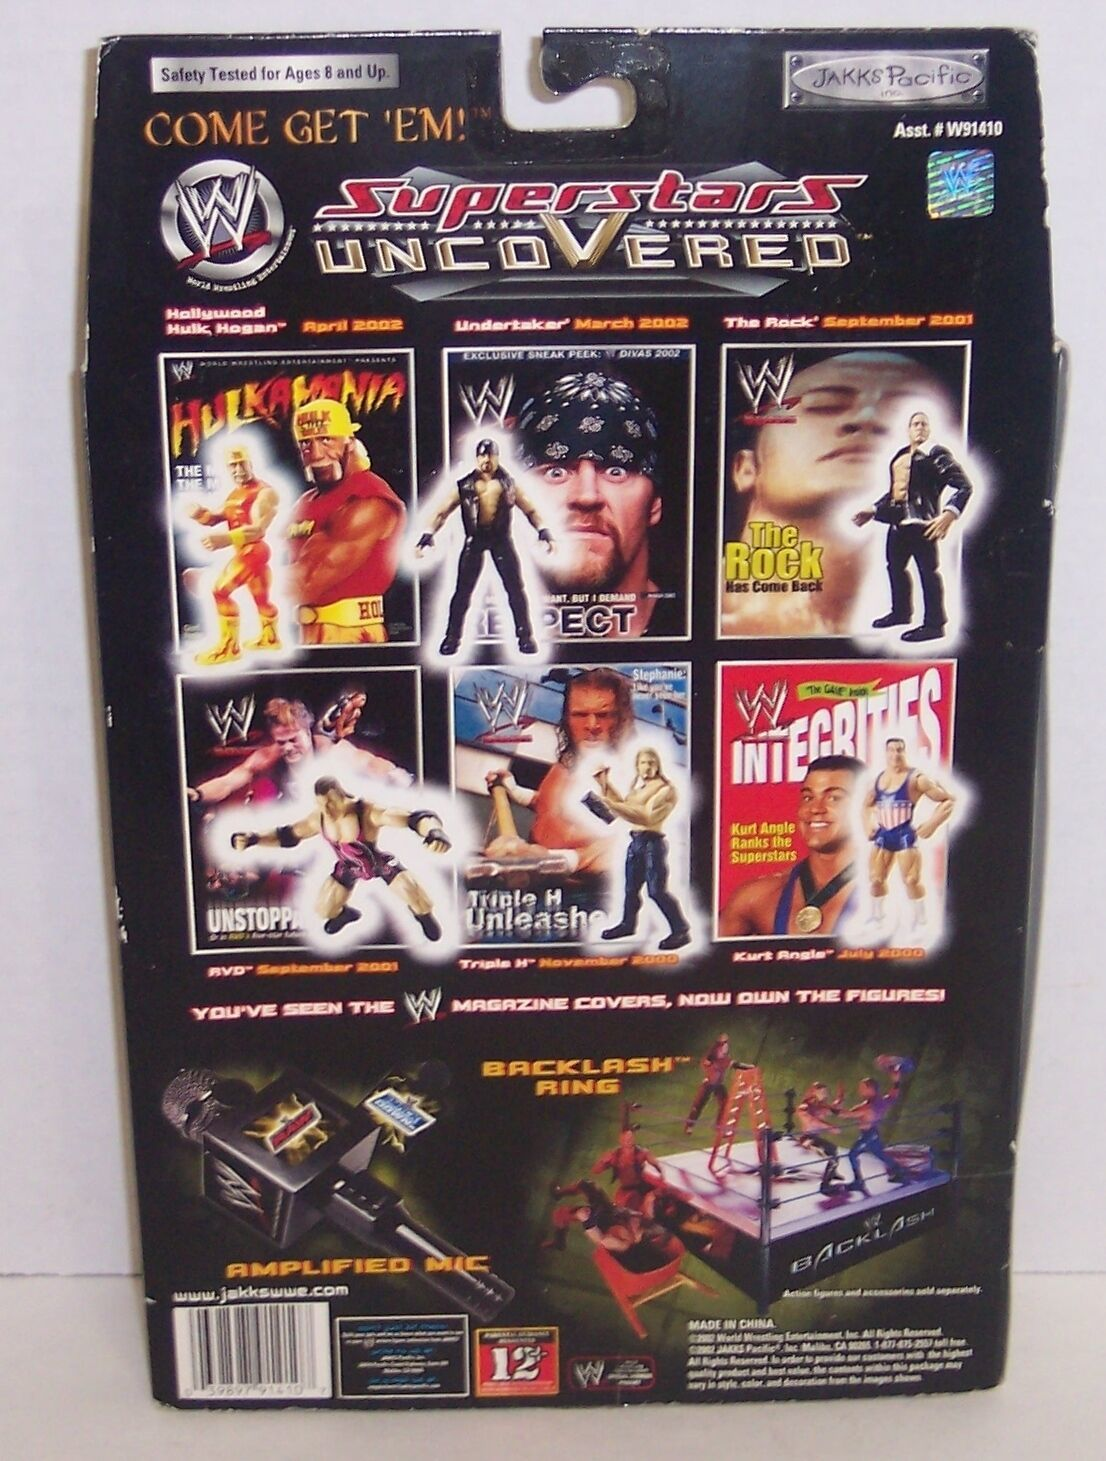 "New! 2002 Jakk's Superstars uncoVered ""The Rock"" Action Figure WWF WWE [786] image 2"